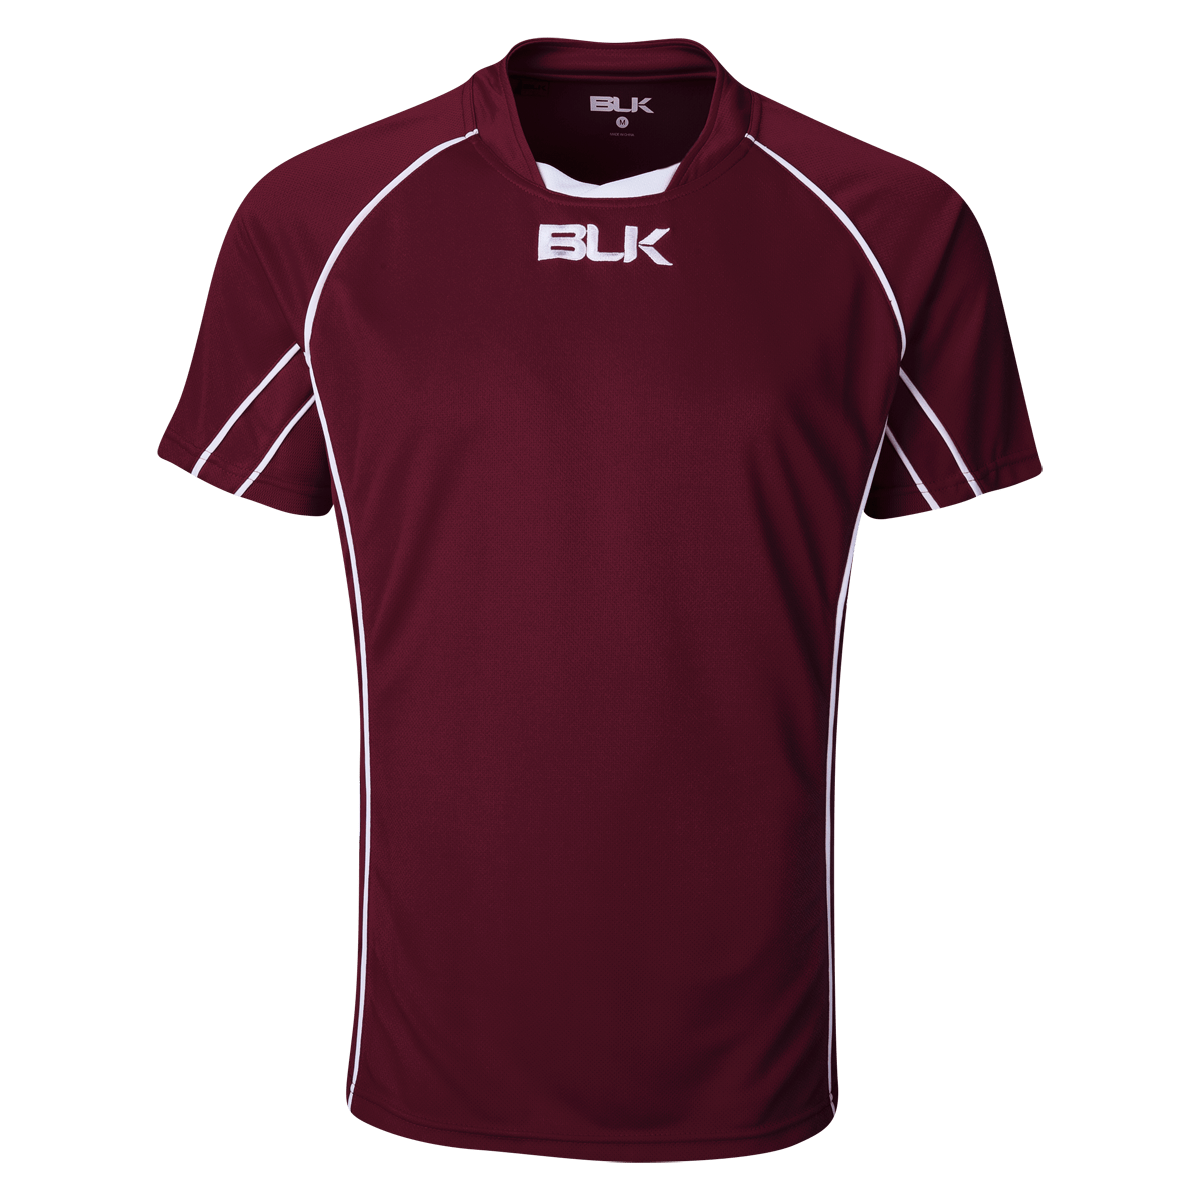 BLK Maroon Youth Icon Rugby Jersey